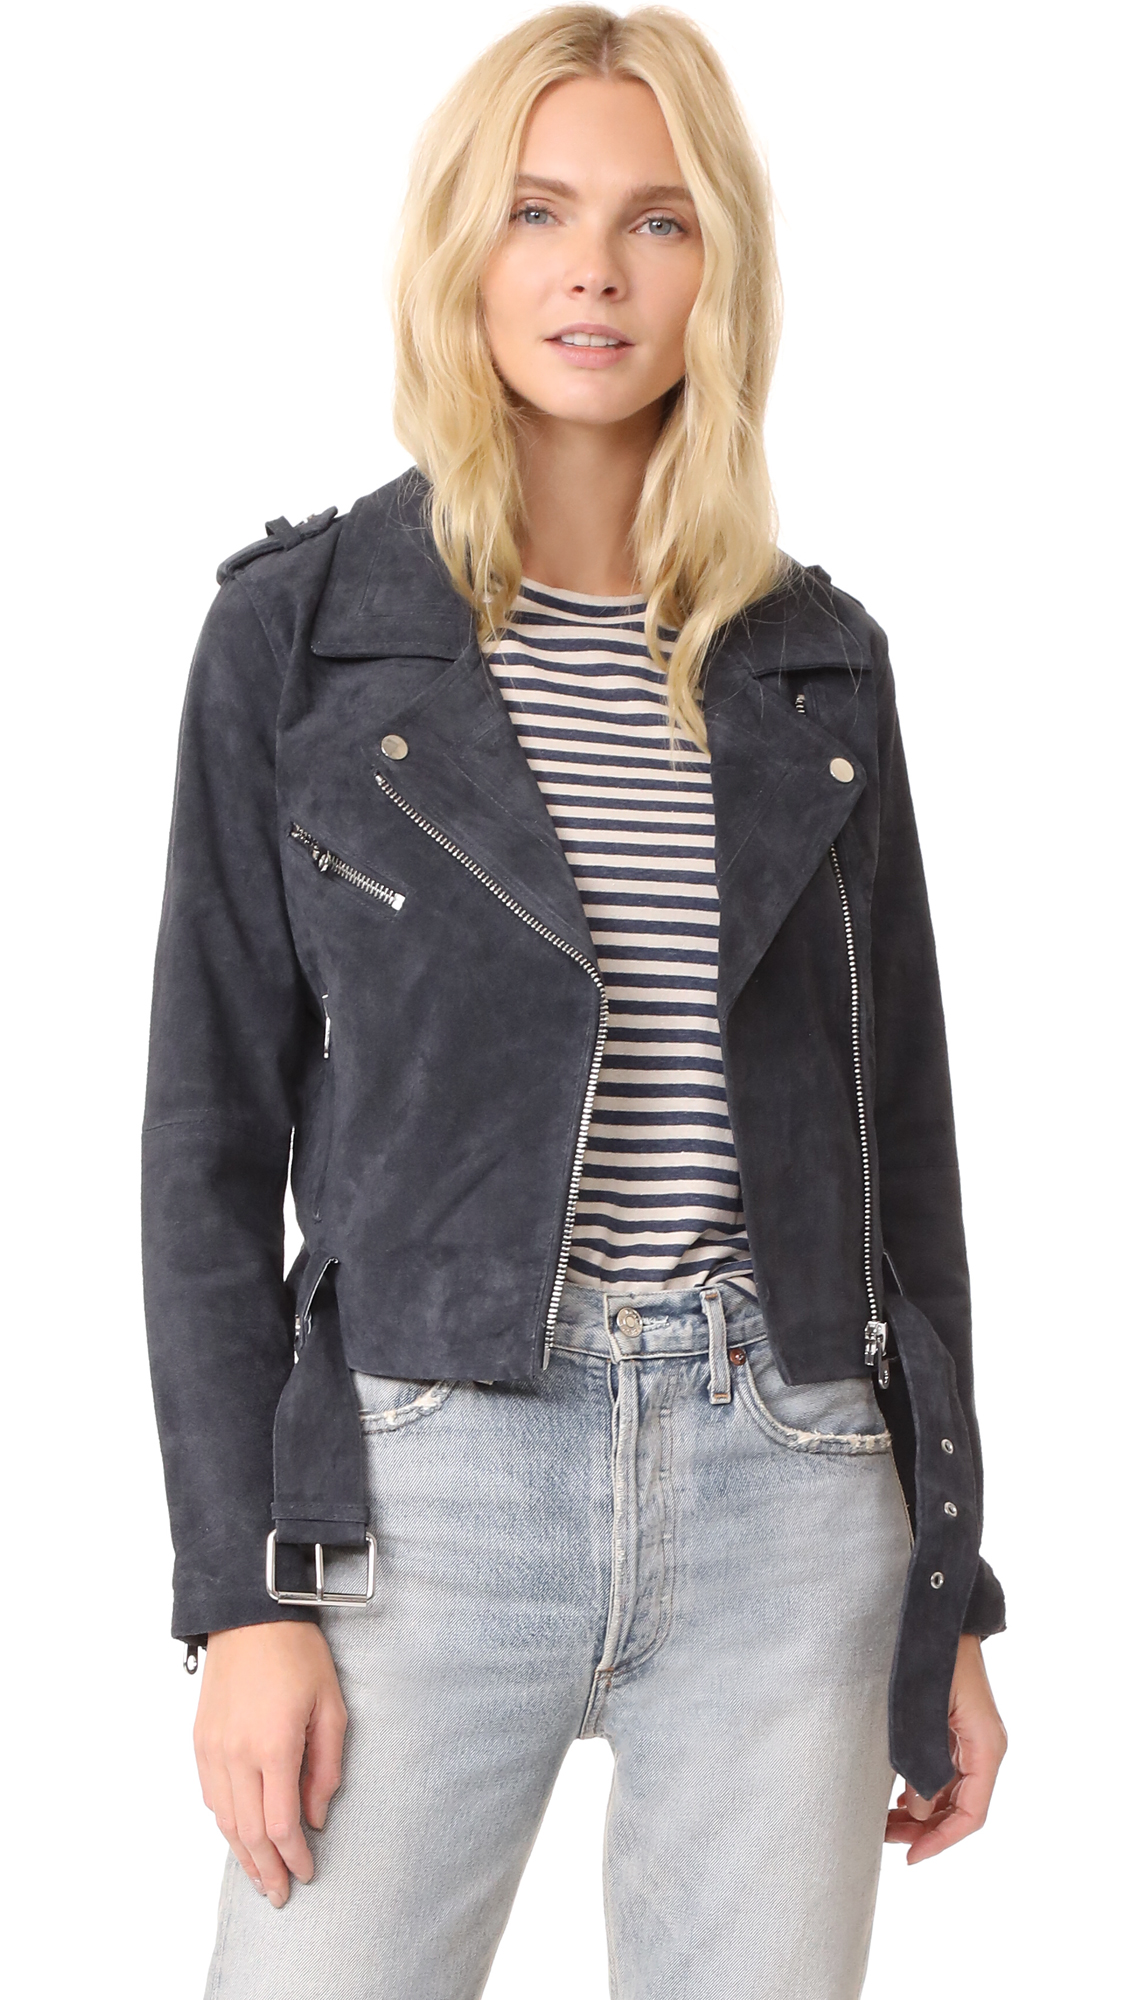 Driftwood Suede Moto Jacket - Smoke Grey